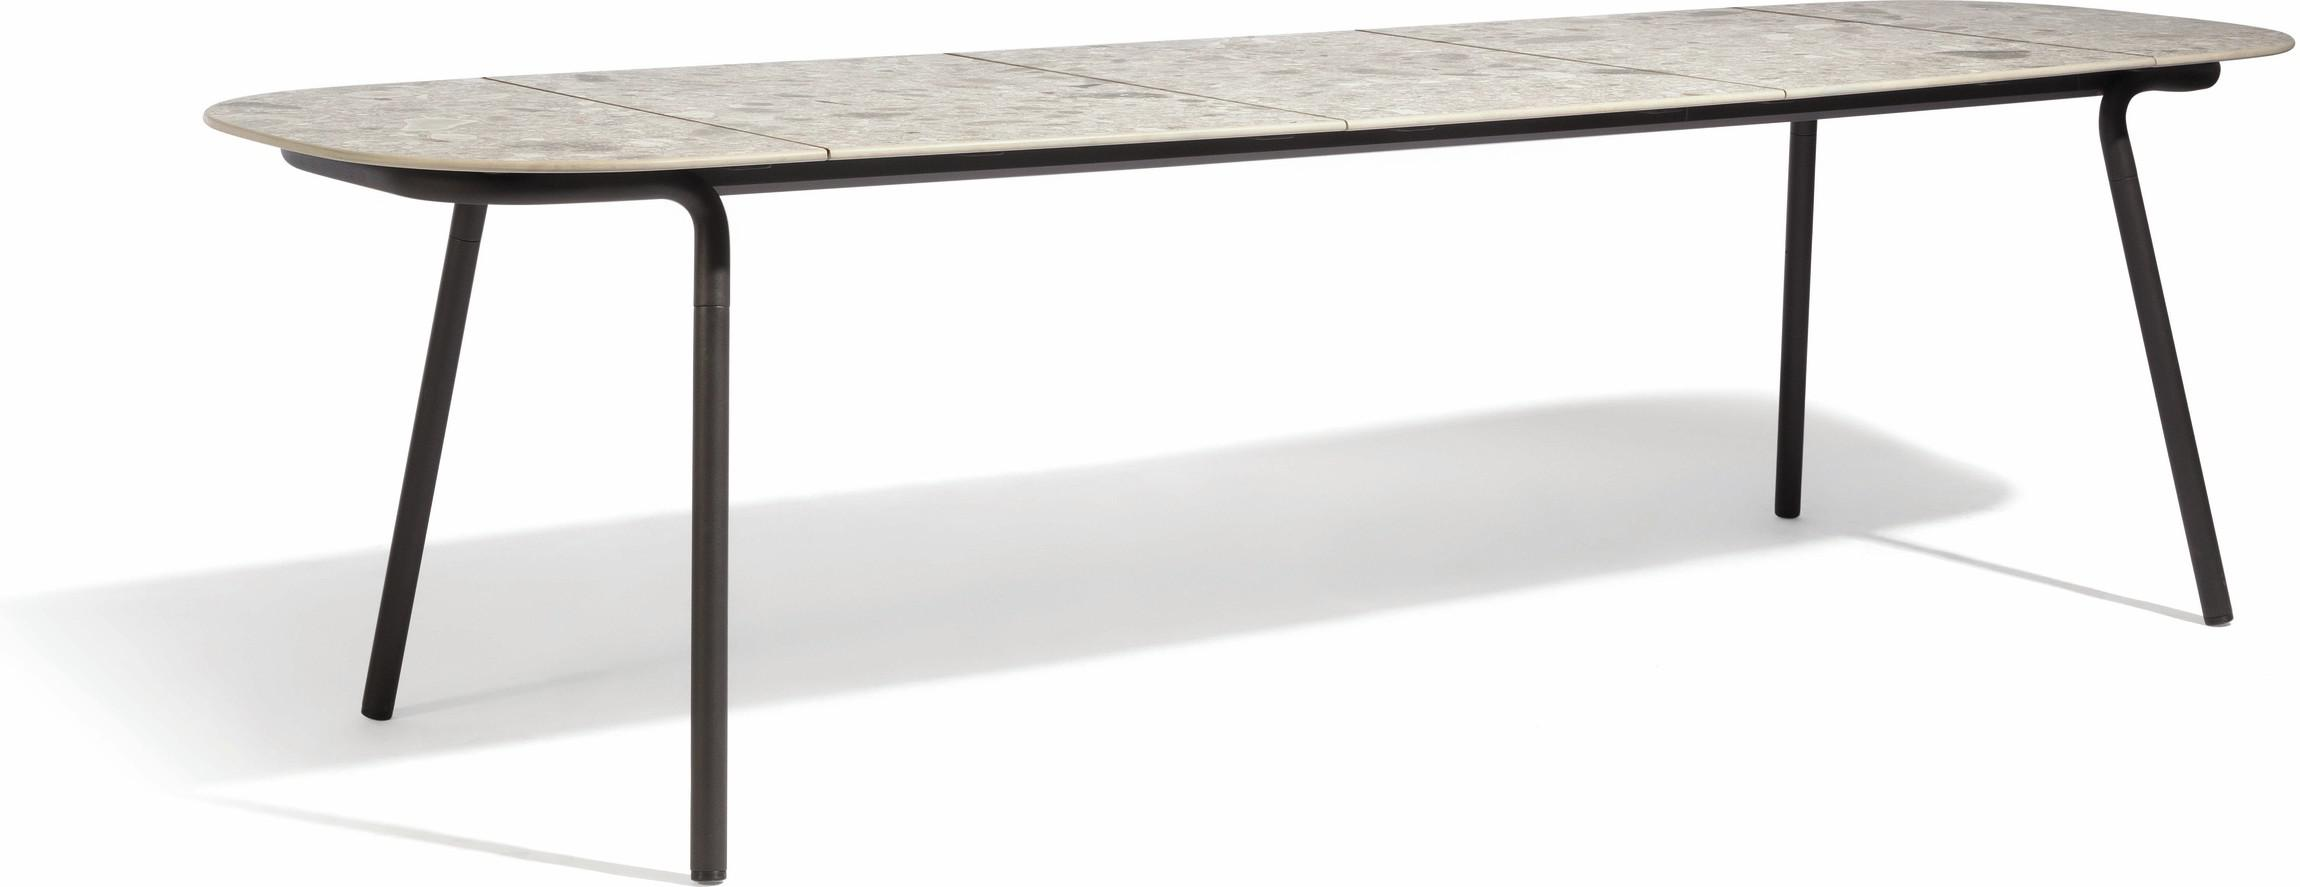 Minus Dining table - lava - CF 280